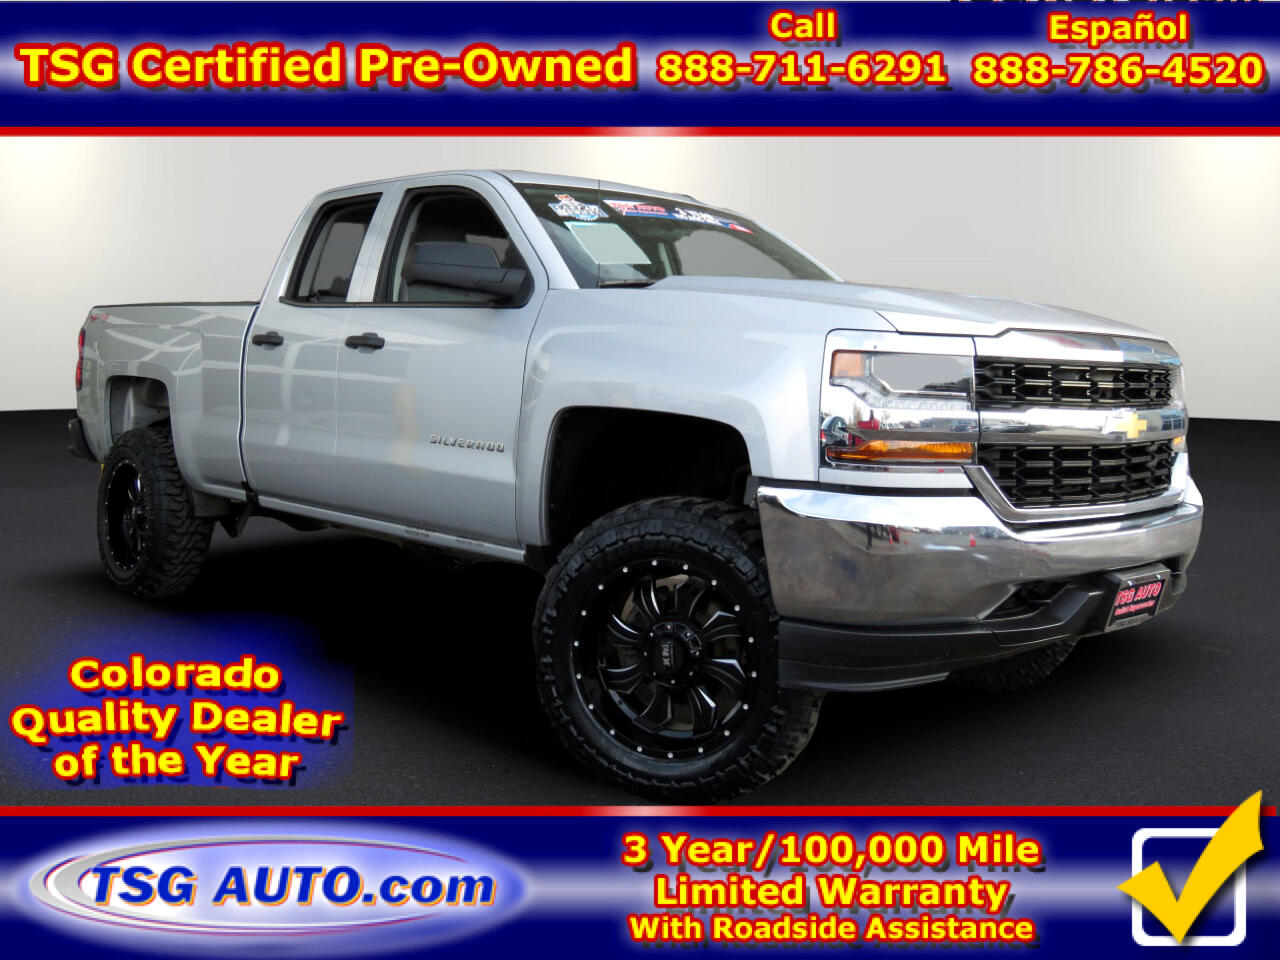 2016 Chevrolet Silverado 1500 4WD Double Cab W/Custom lift/Wheels/Tires